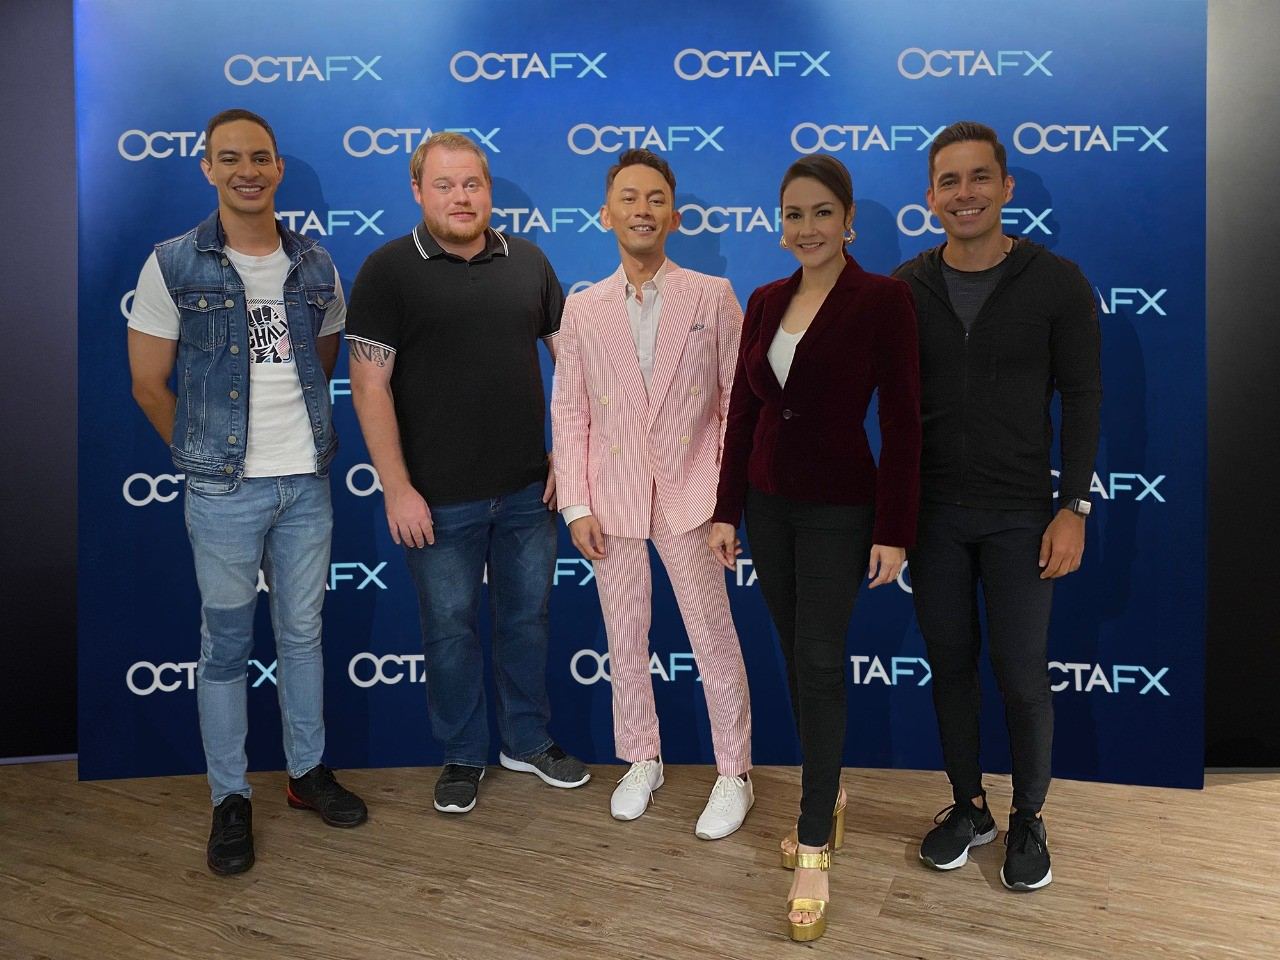 Malaysian celebrities battle on the Forex market in OctaFX Youtube Series